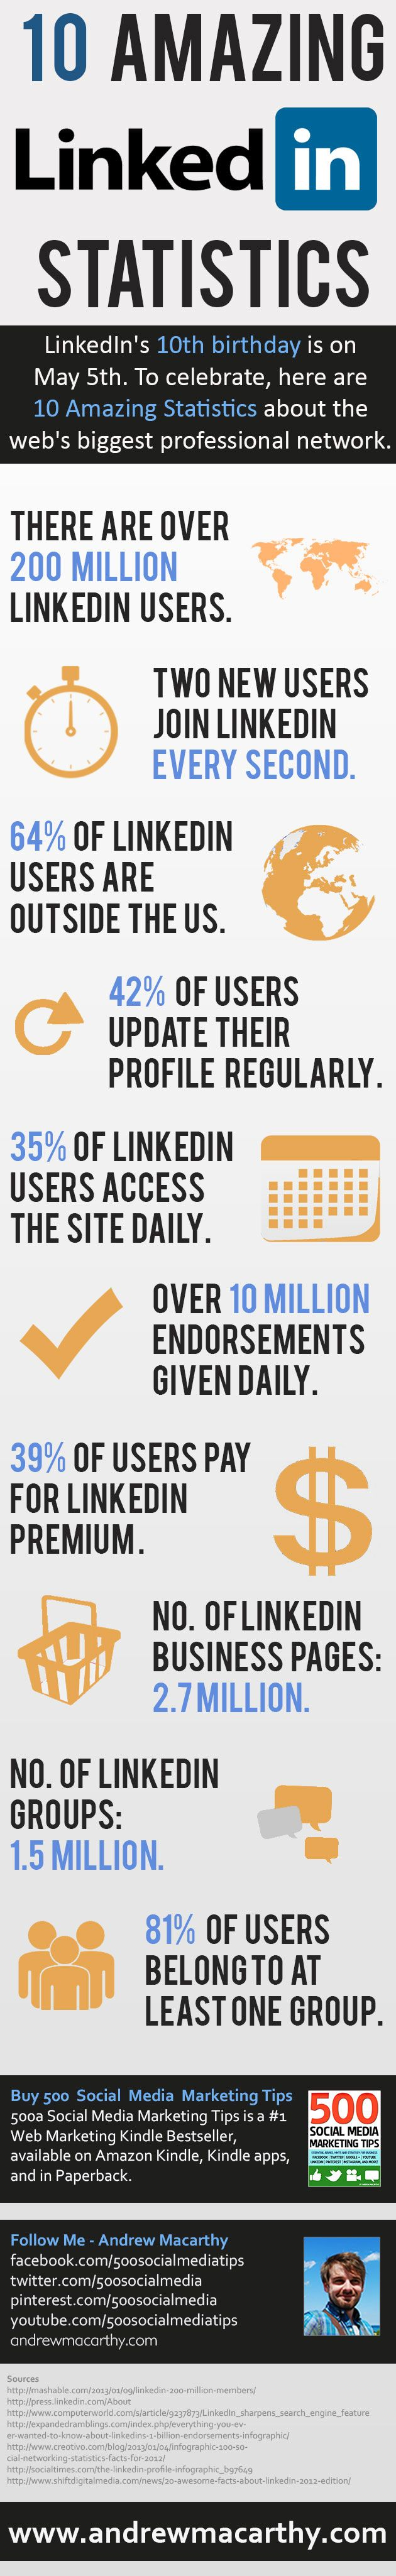 LinkedIn celebrates its 10th birthday on May 5th, 2013. Here are 10 Amazing LinkedIn Statistics to celebrate this milestone!